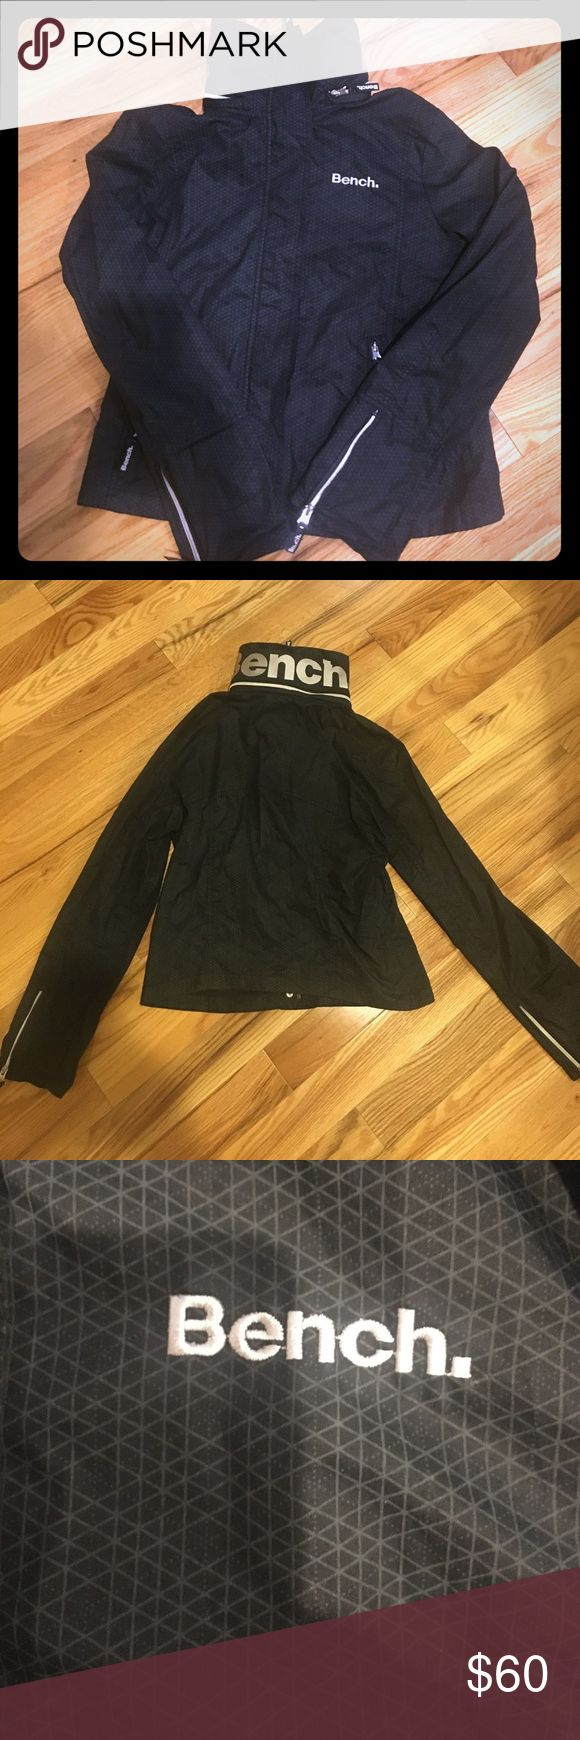 Bench Water Resilient Jacket. Size XL. Bench Water Resilient Black Jacket. Size XL.  Barely worn, no flaws, perfect condition. Hood folds into zipper collar. Tags: rain coat, running, hiking, active wear. Bench Jackets & Coats